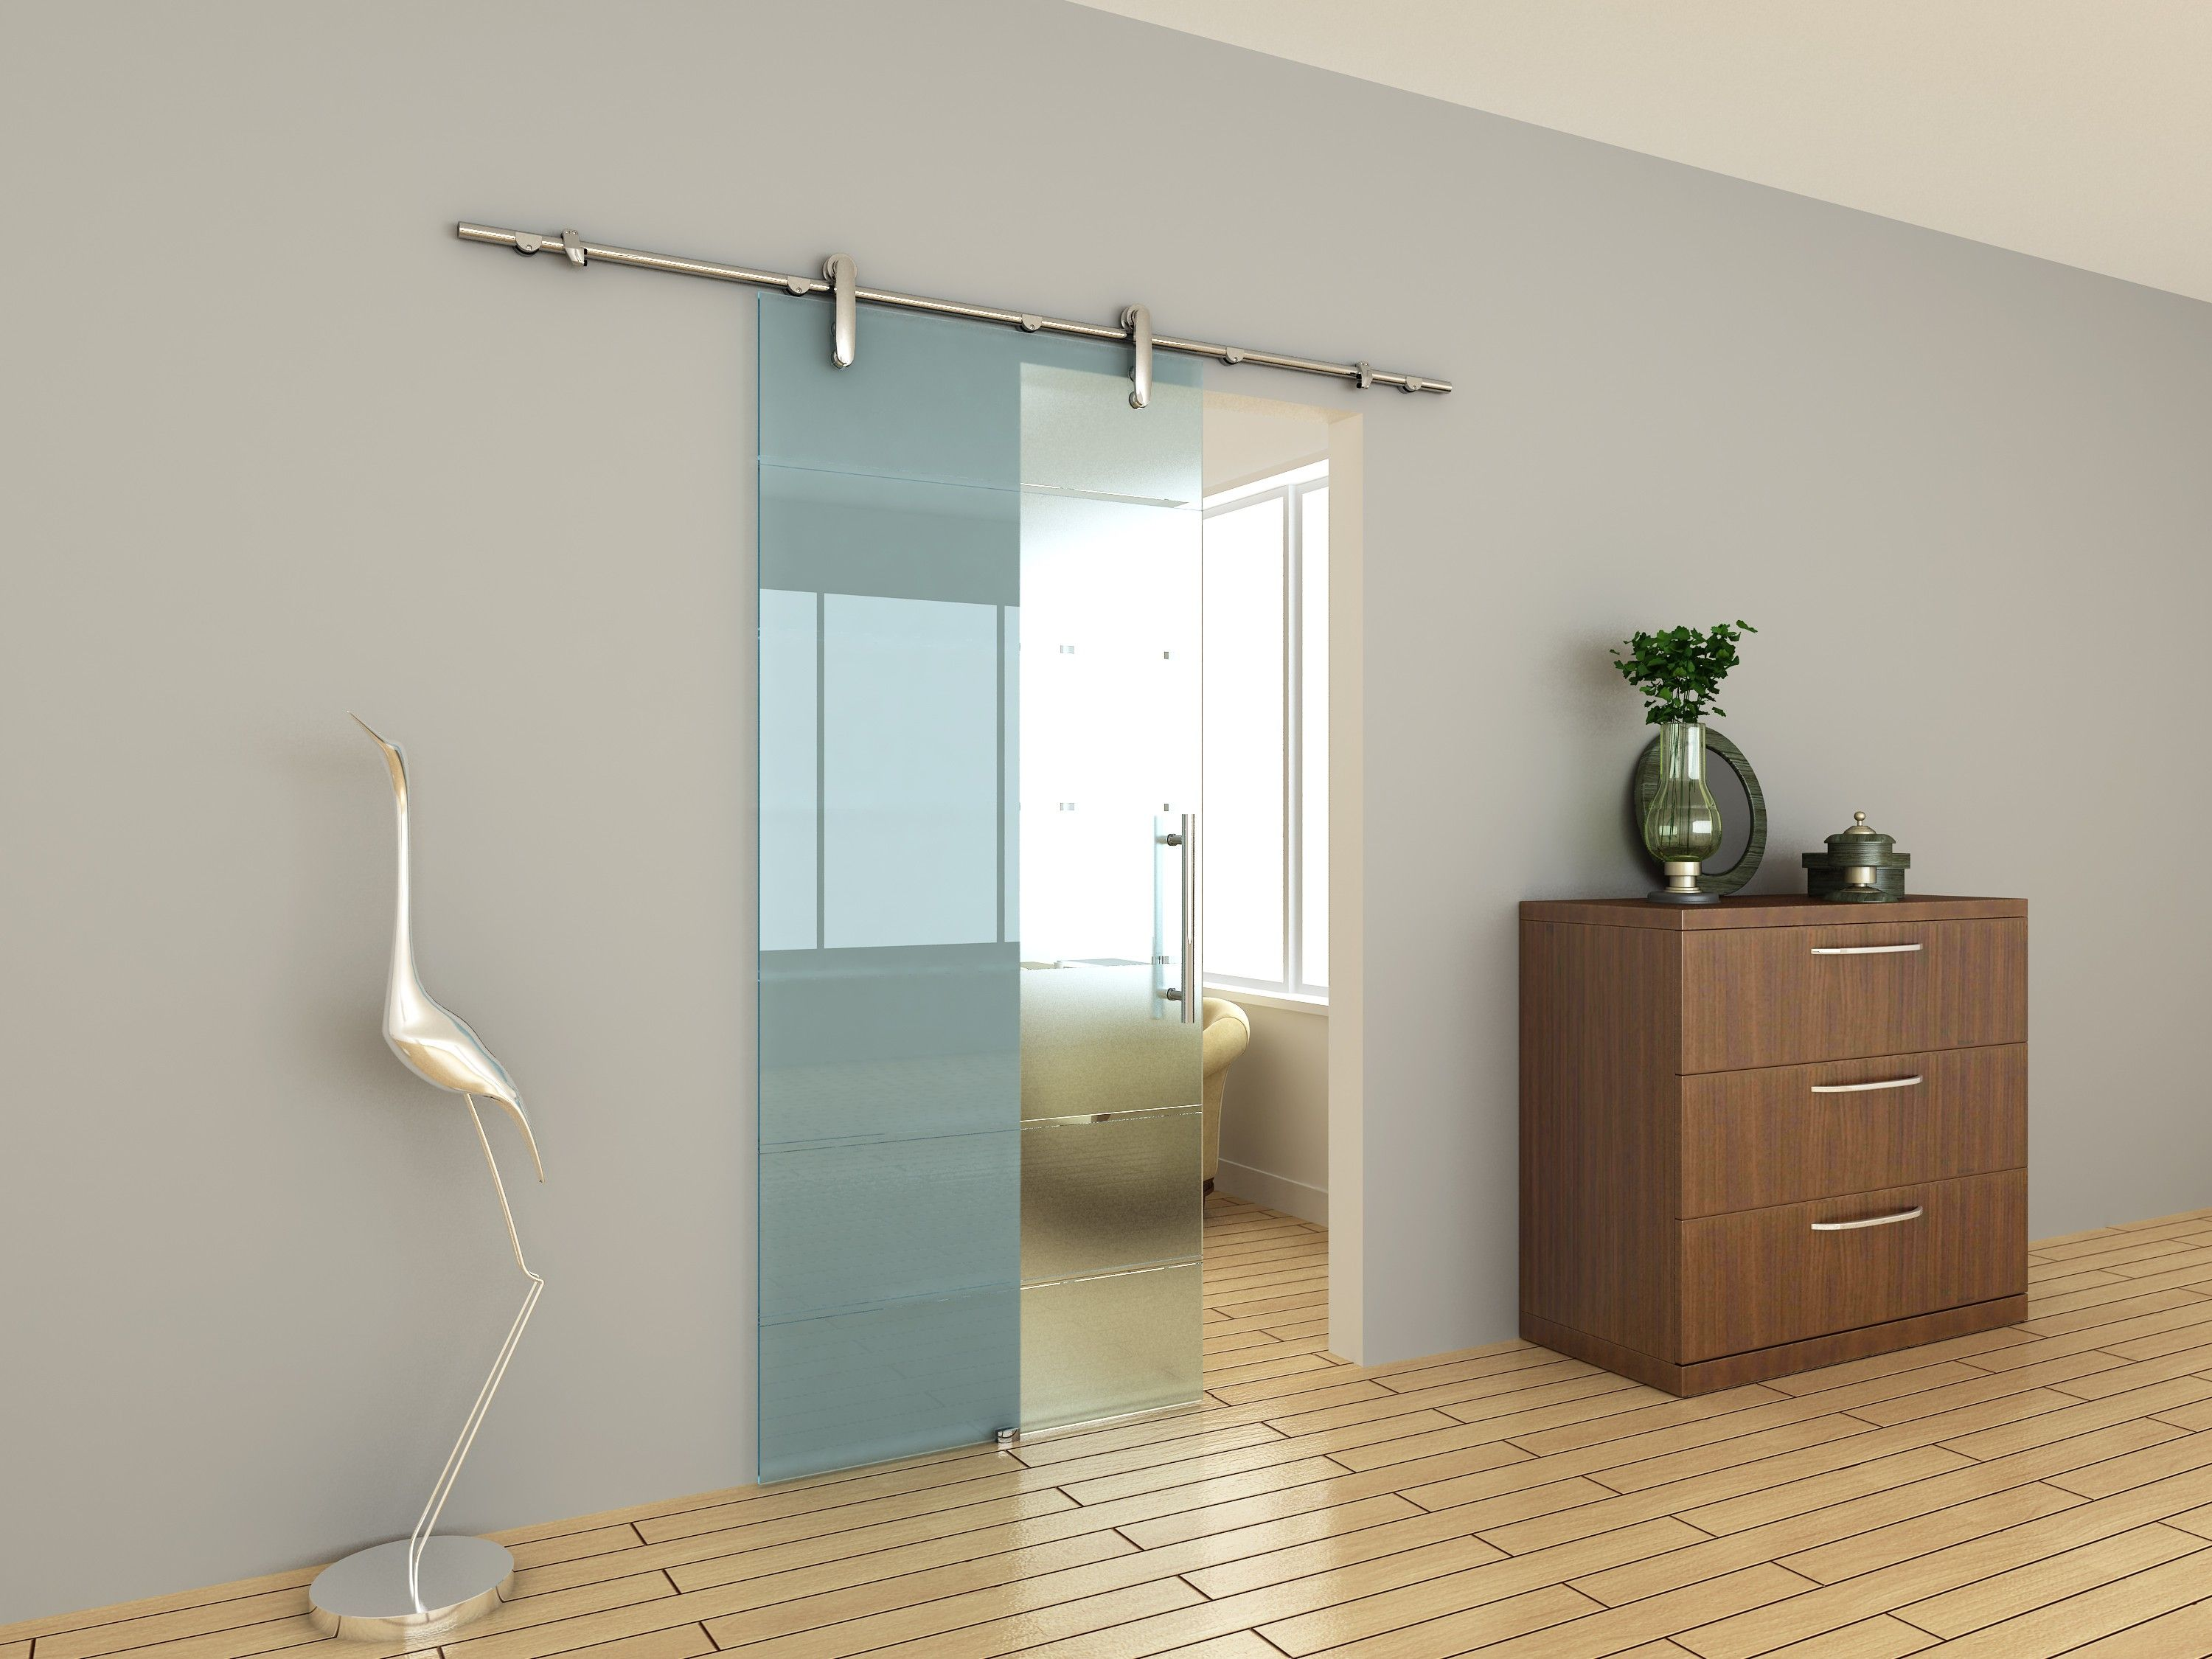 Sliding Glass Door For Bathroom Astonishing Sliding Door Design - Door knobs for bathrooms for bathroom decor ideas